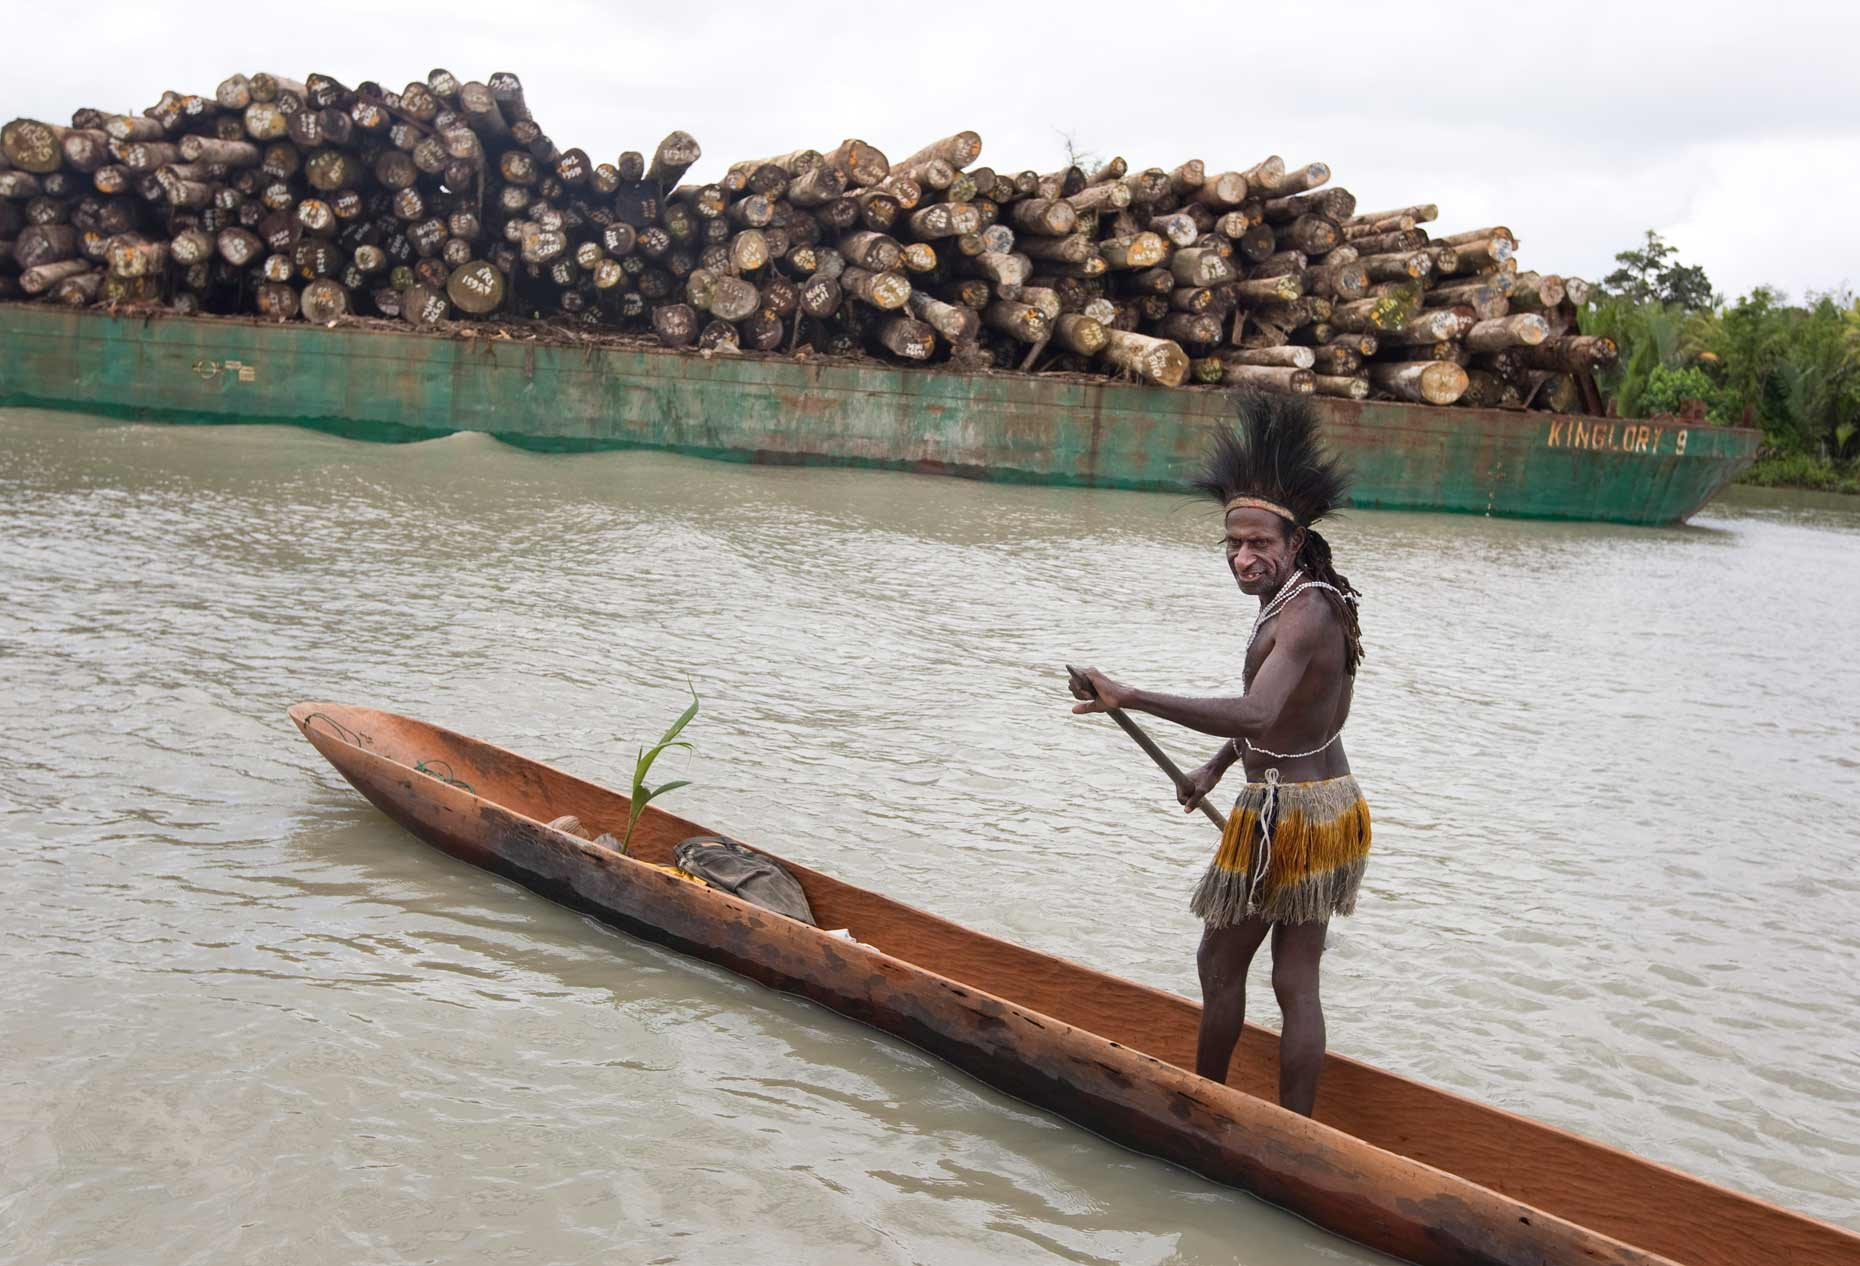 illegal logging and indigenous man, by Scotland Greenpeace photographer